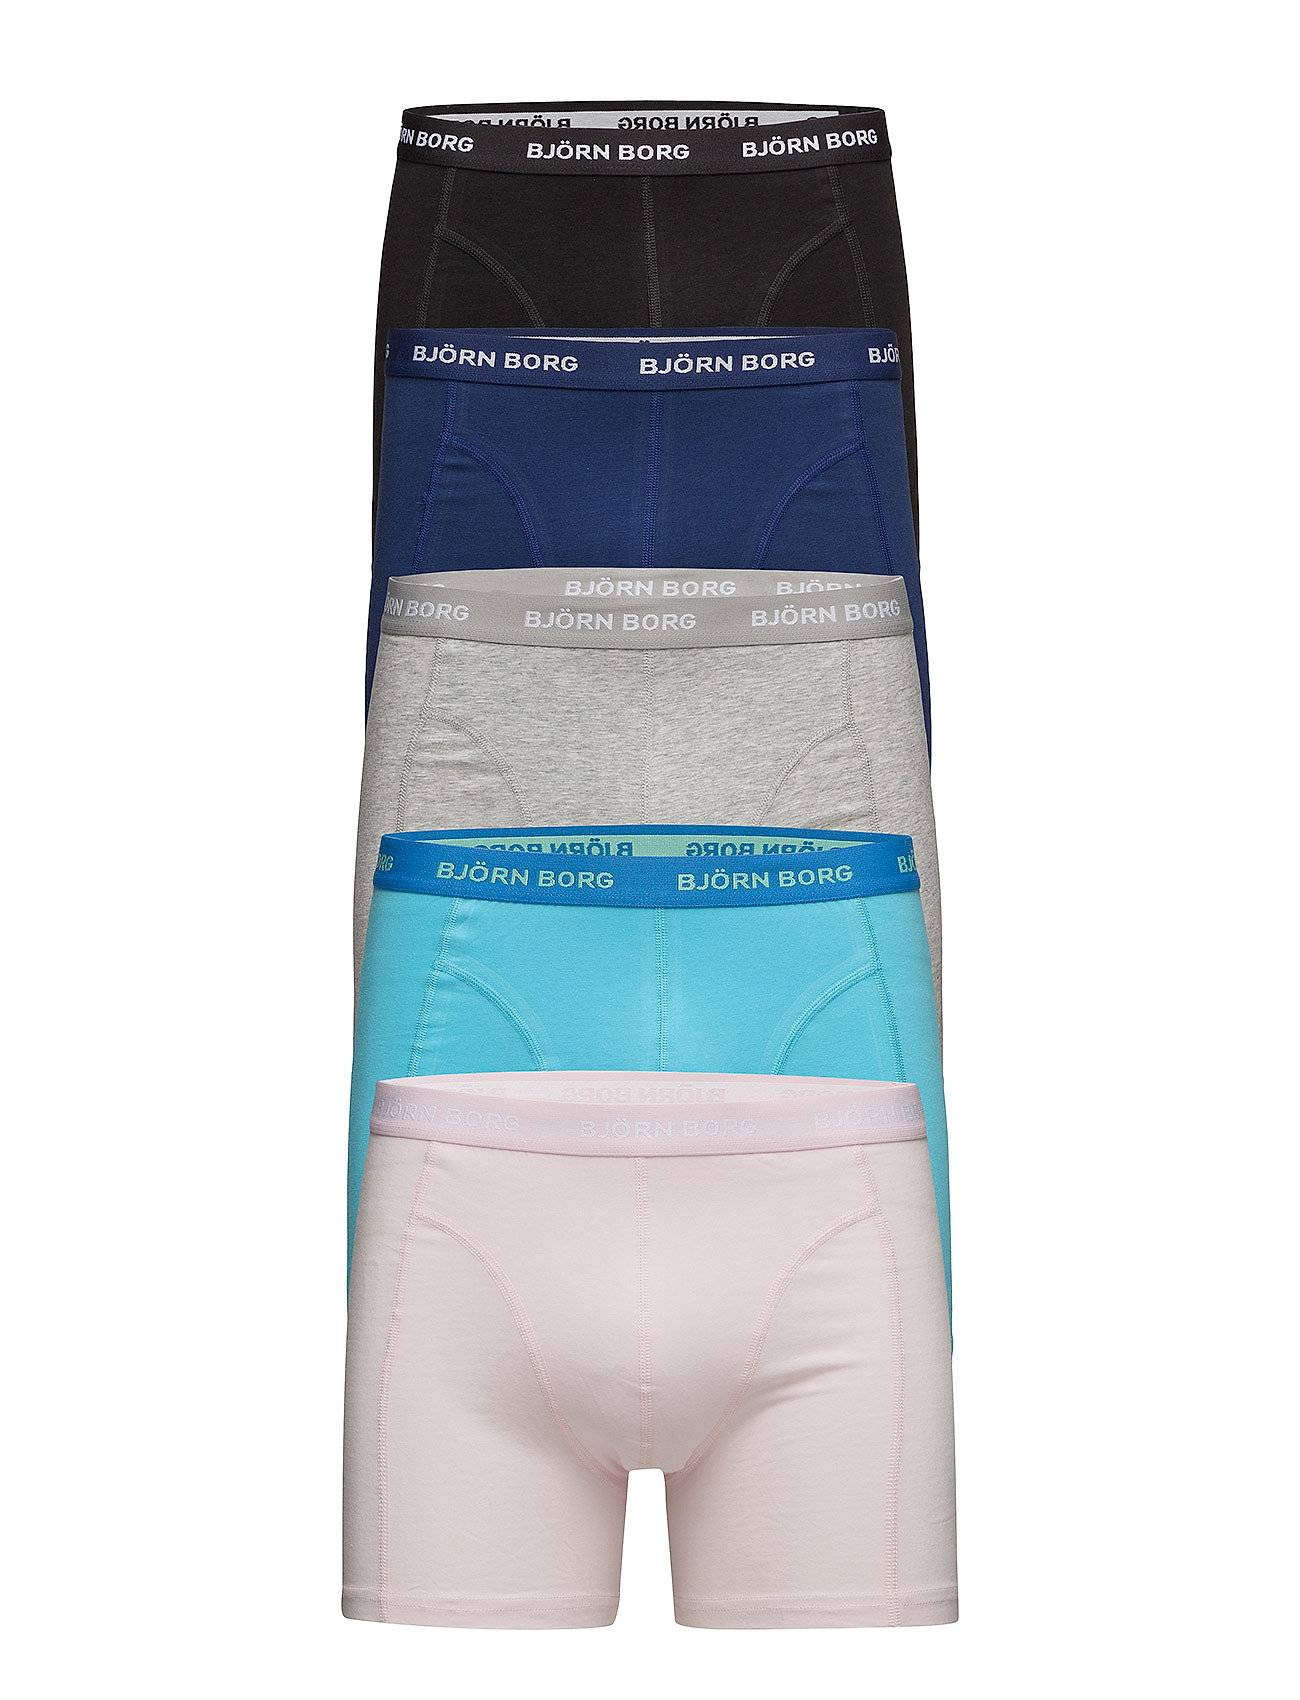 Björn Borg 5p Shorts Seasonal Solids